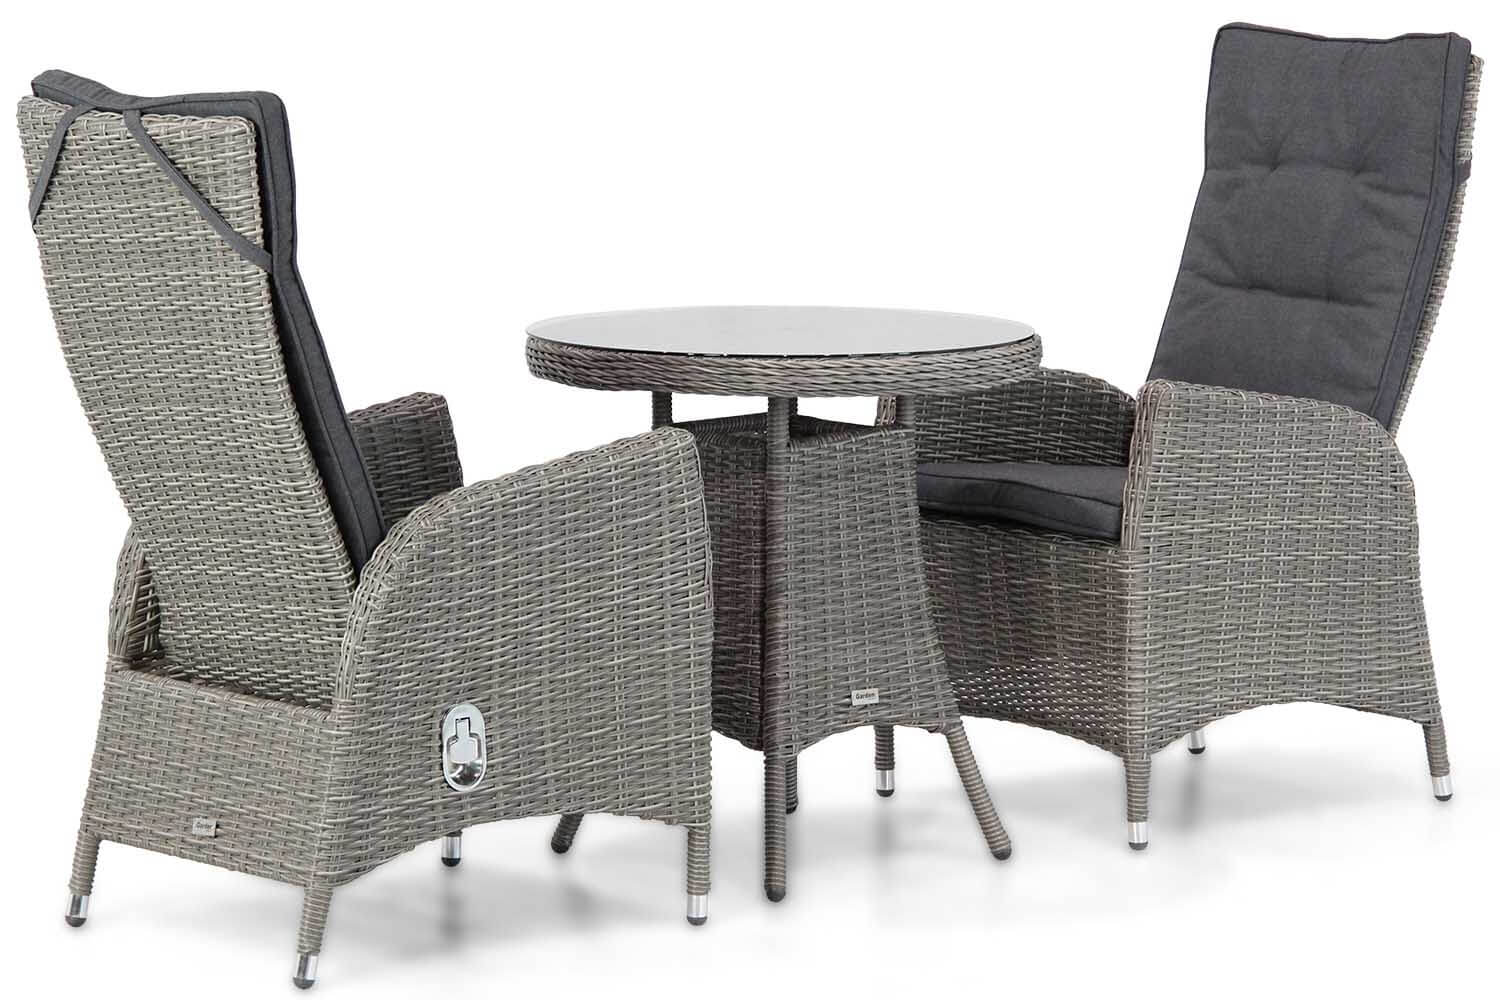 Garden Collections Lincoln/Bolton dining tuinset 3-delig